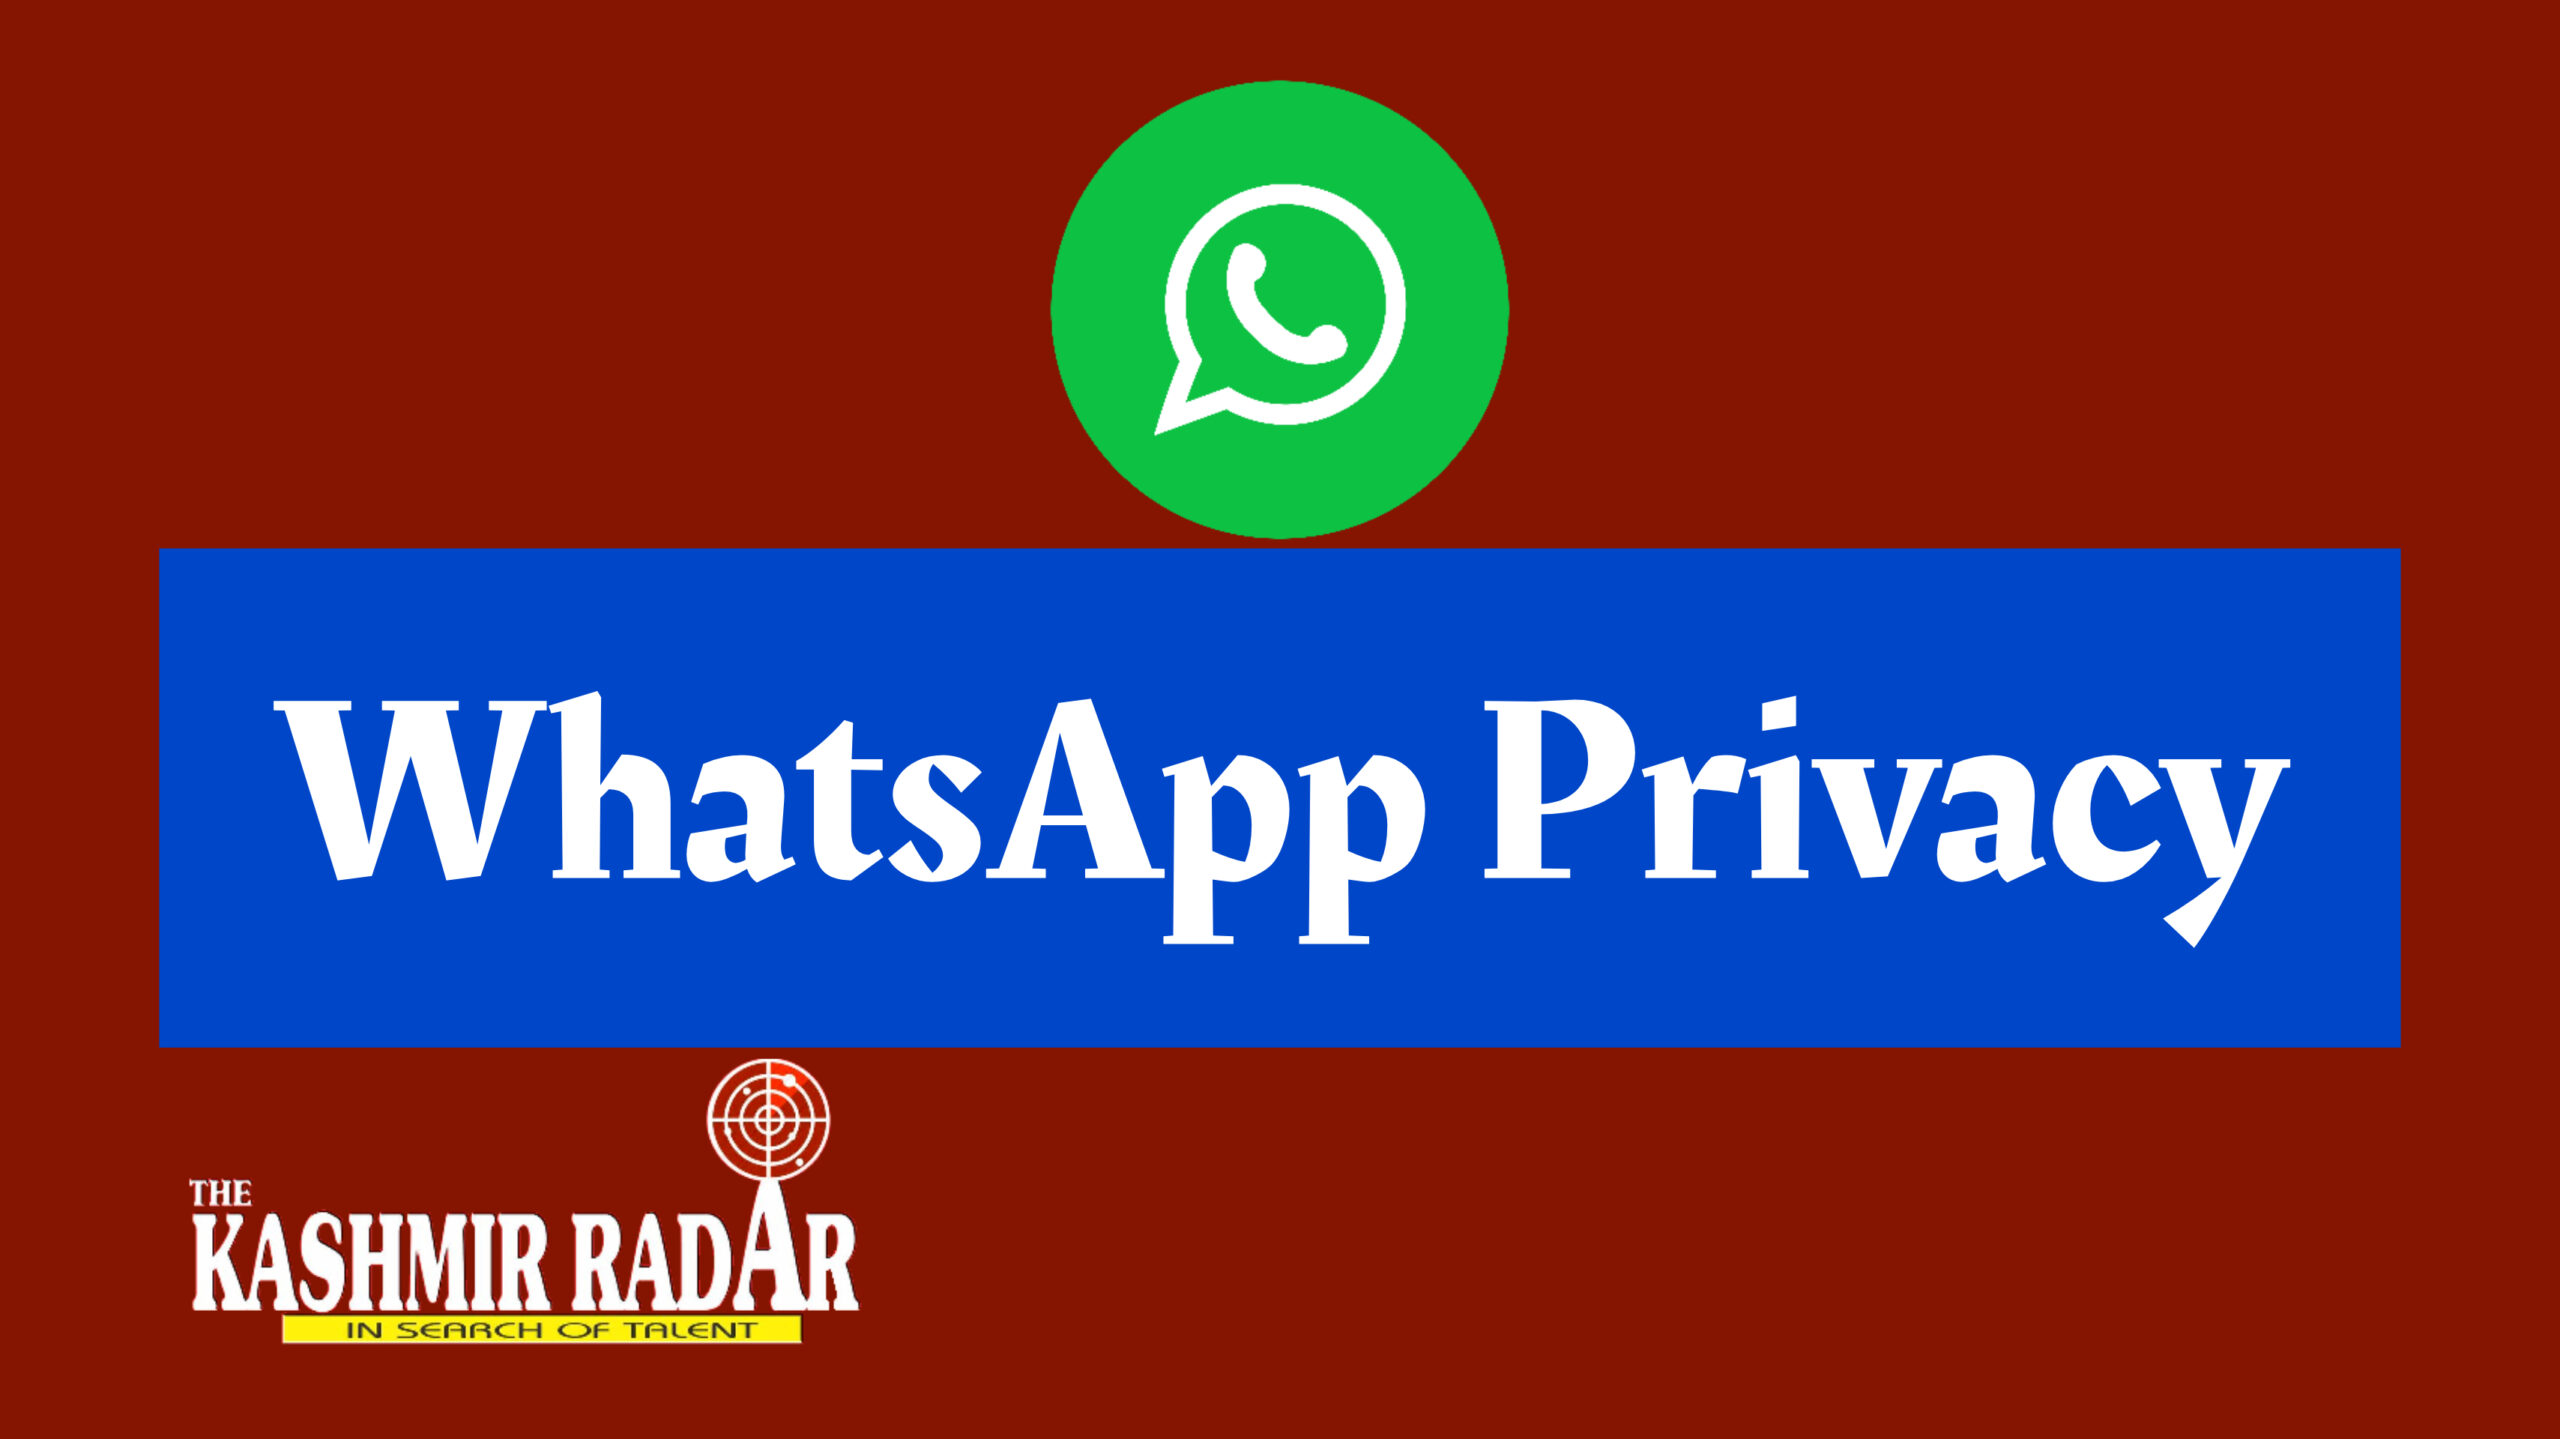 Whatsapp reaches out to users via status, says it values privacy